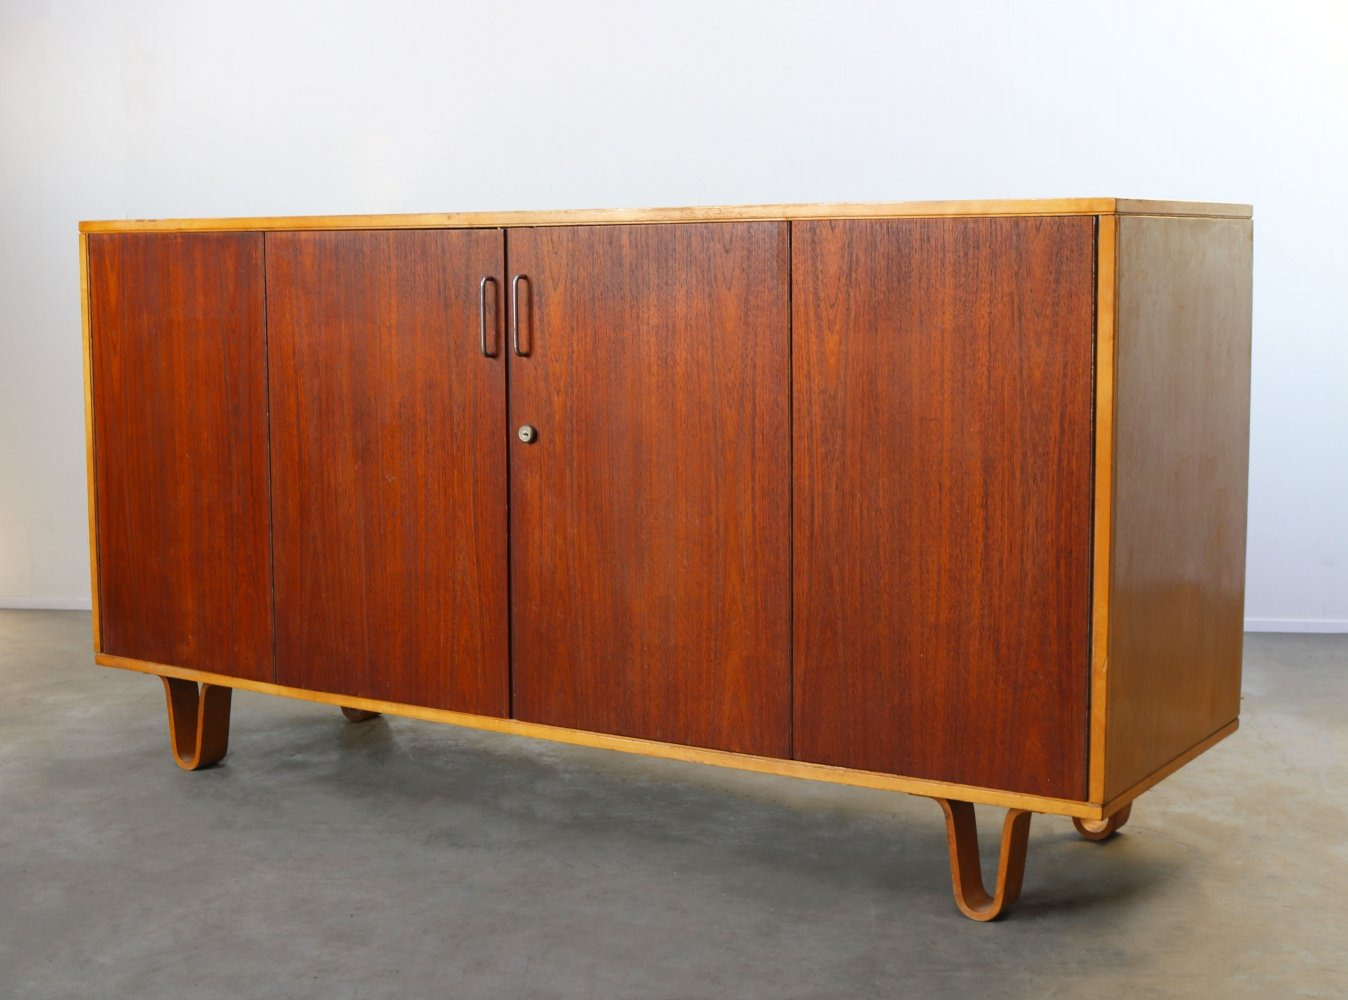 Sideboard DB02 in teak & birch by Cees Braakman for Pastoe, 1950